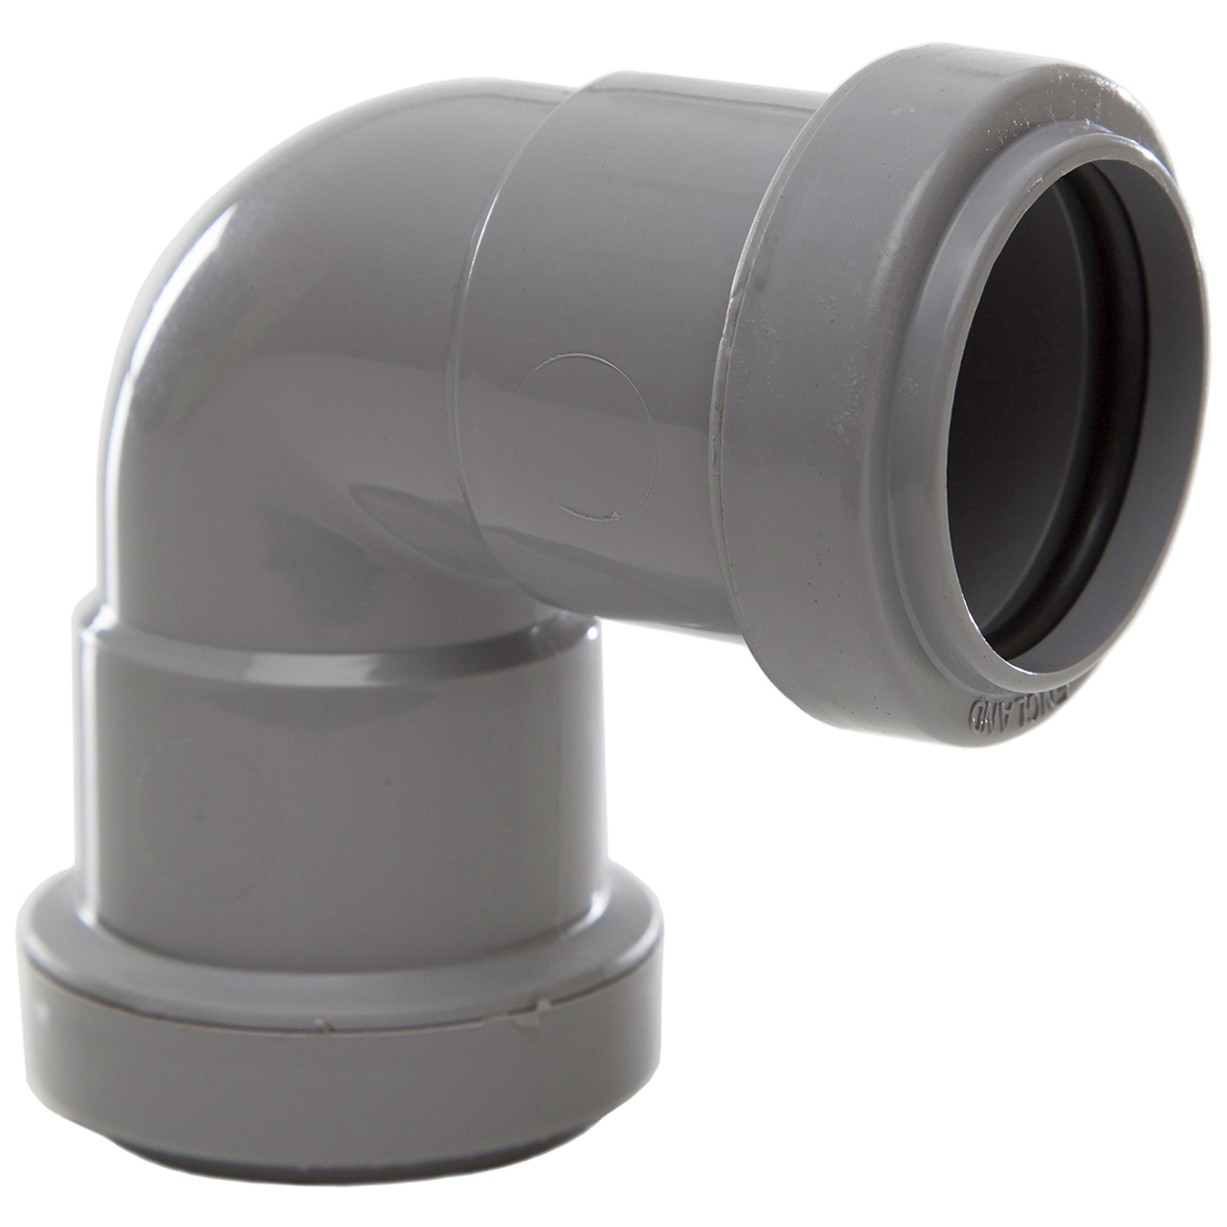 Polypipe 32mm Push Fit Waste 90 Degree Knuckle Bend - Grey